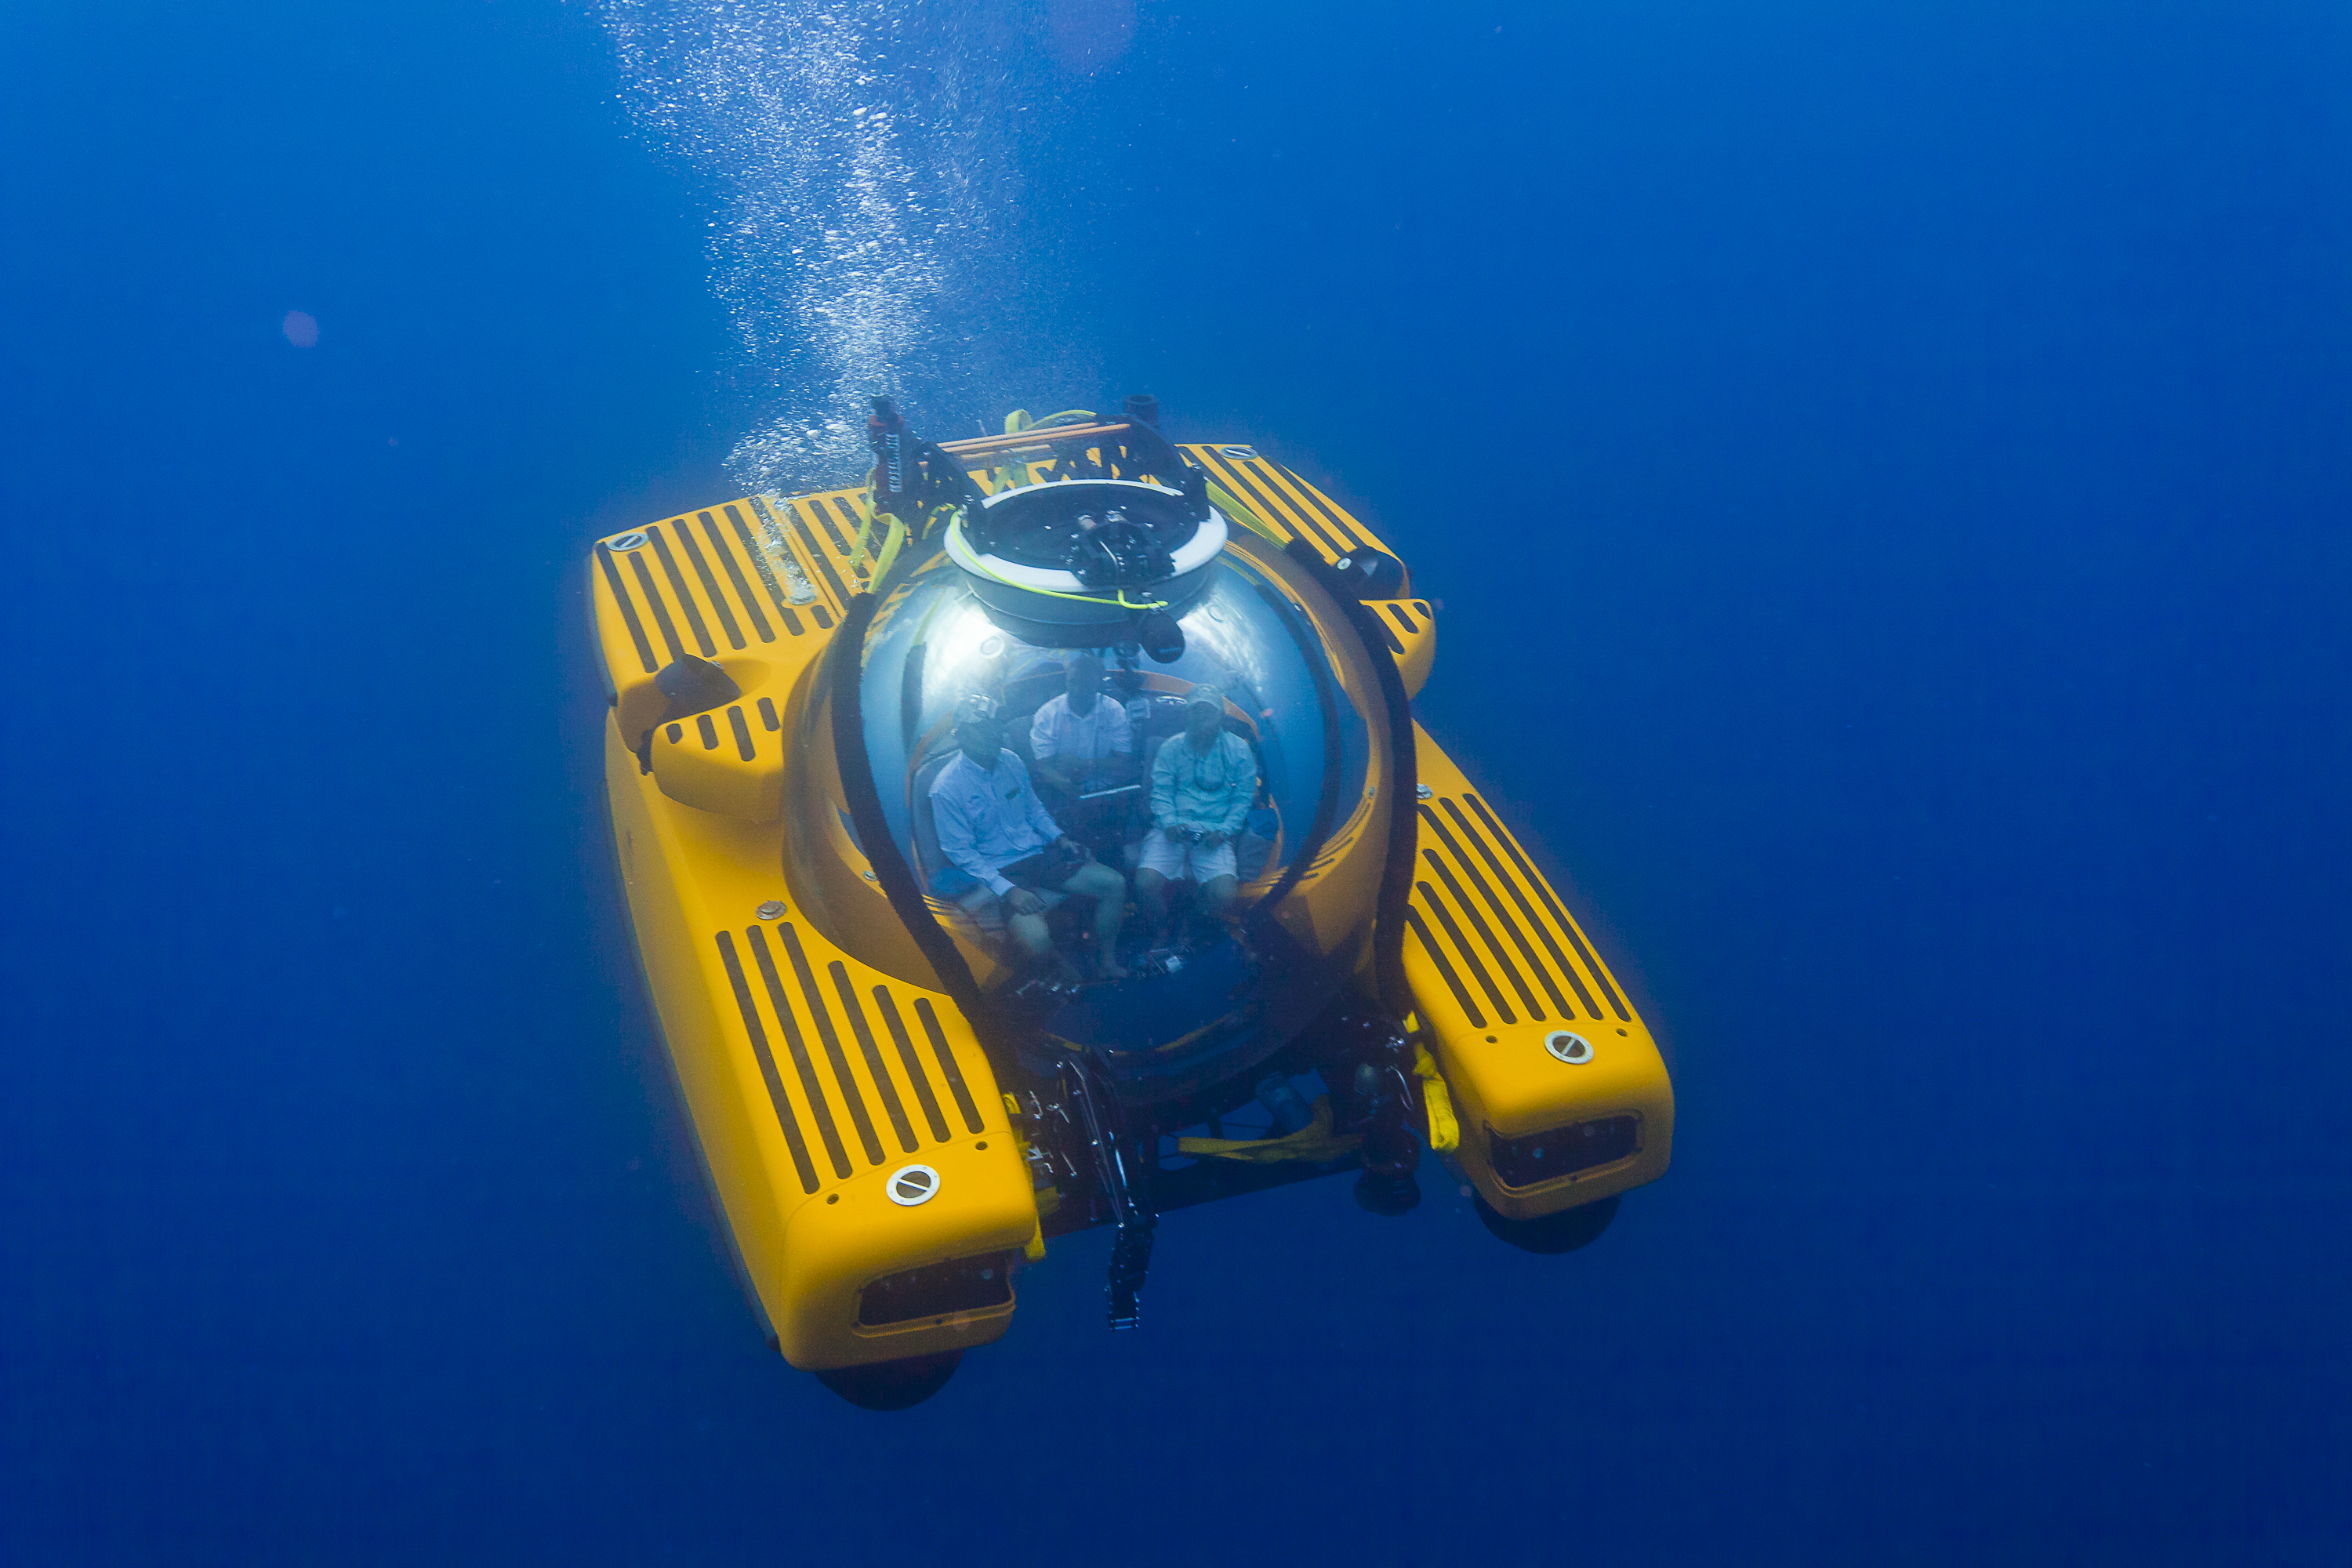 deep sea exploration The nautilus exploration program focuses on three main areas of marine science: biology, geology, and archeology no matter what area a particular cruise focuses on.